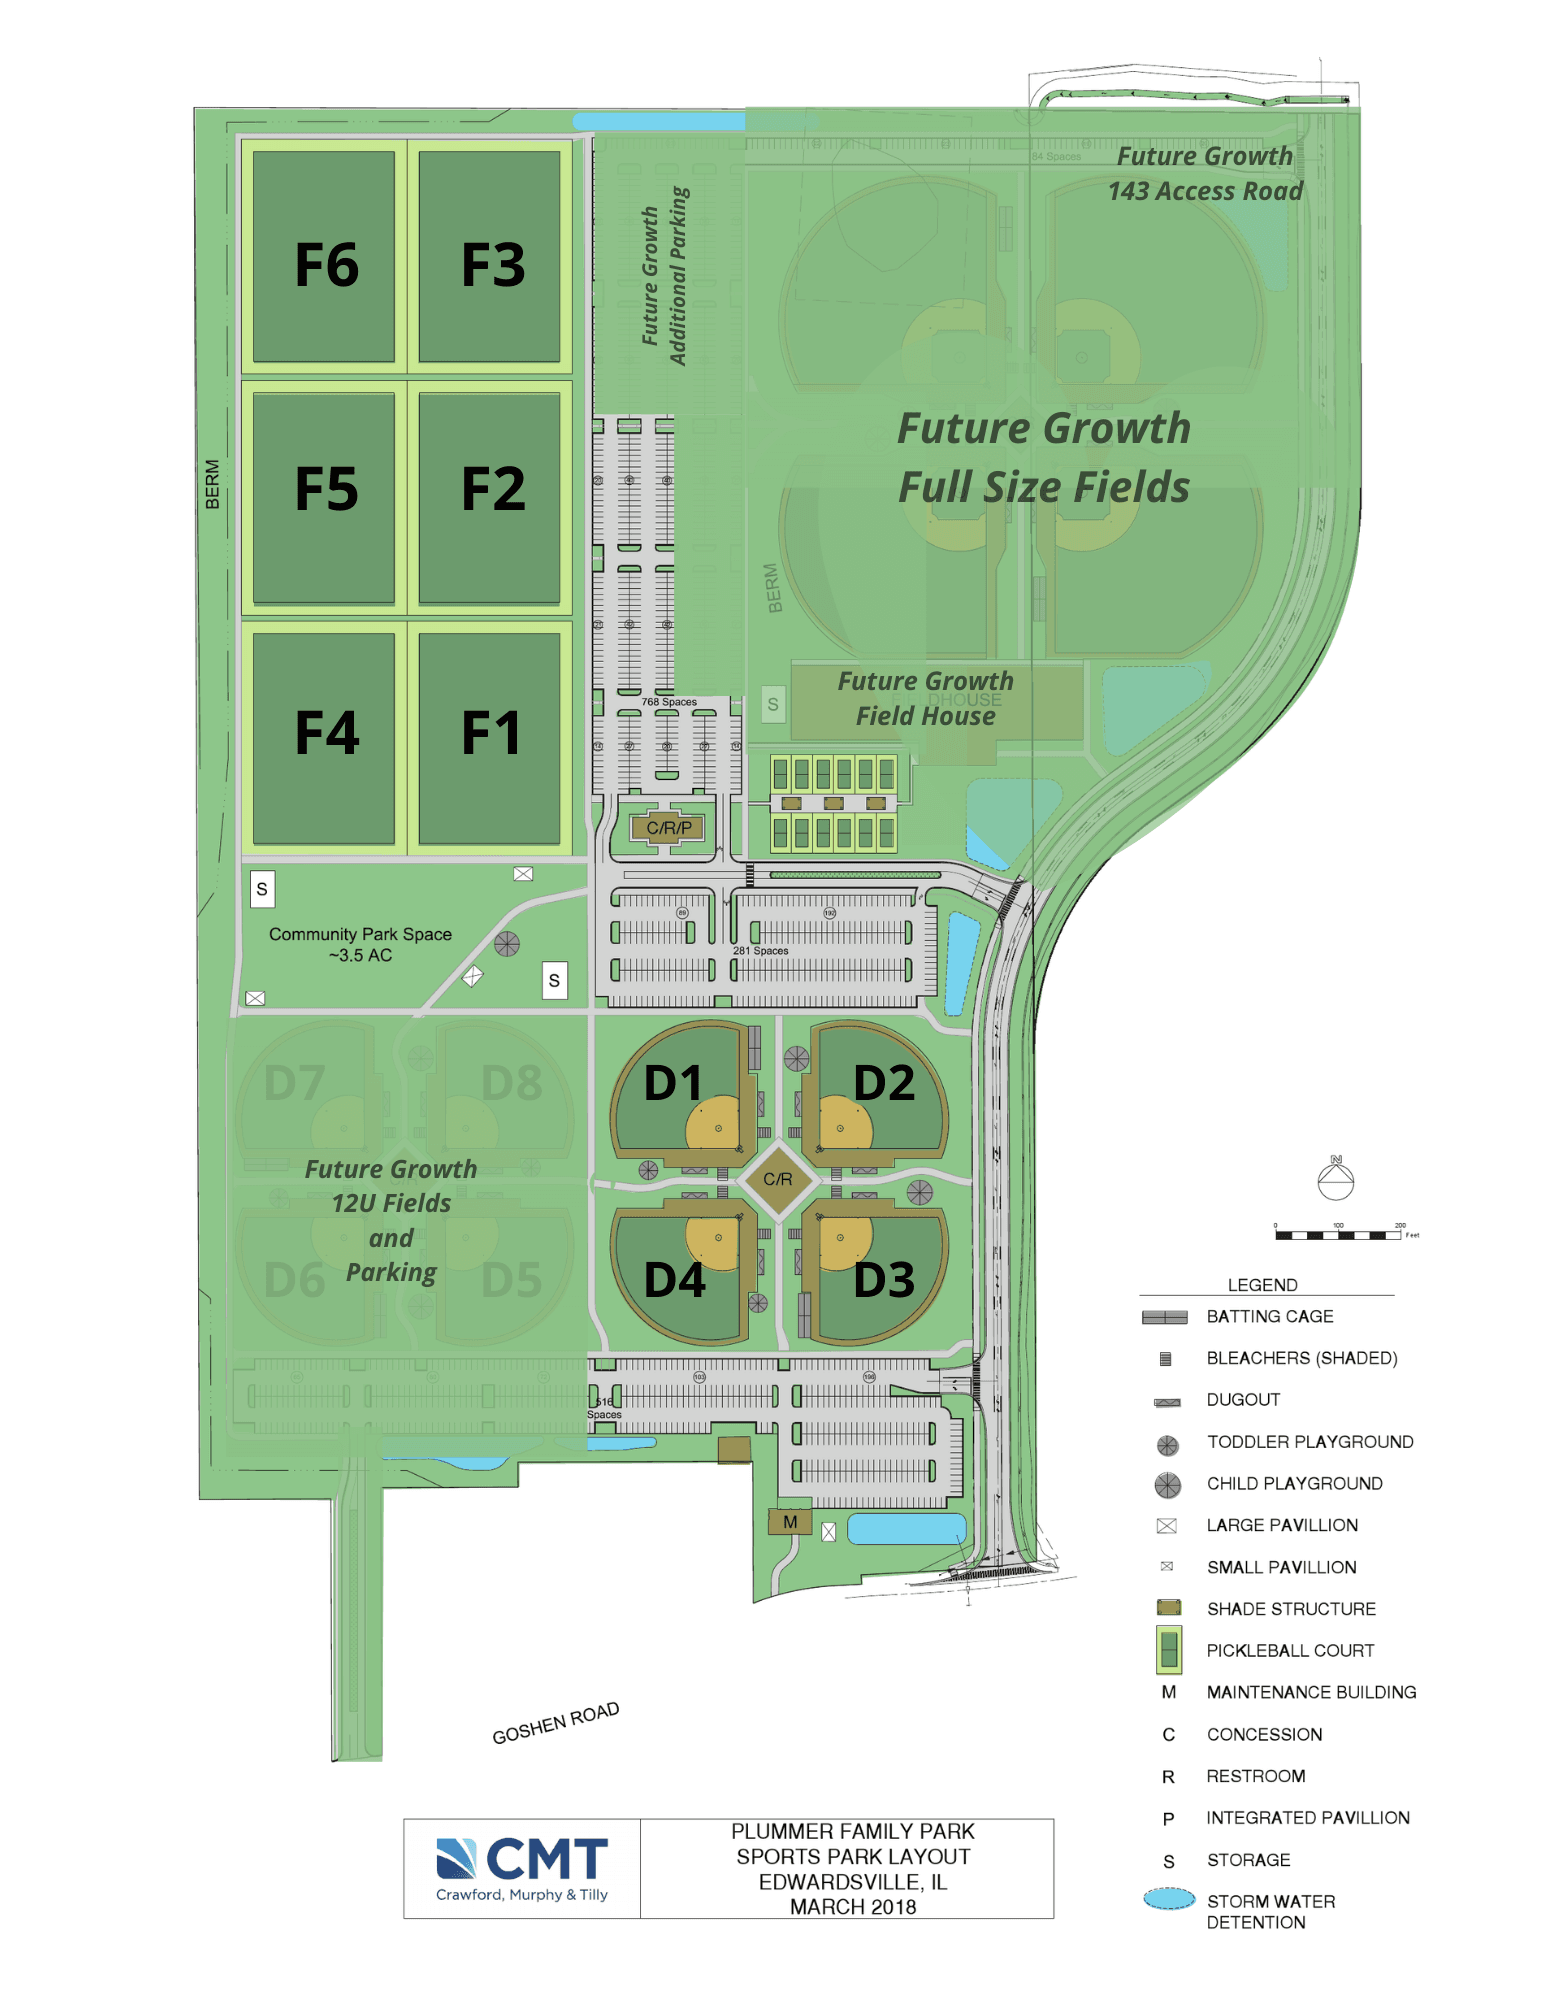 Plummer map layout field numbers for current 2021